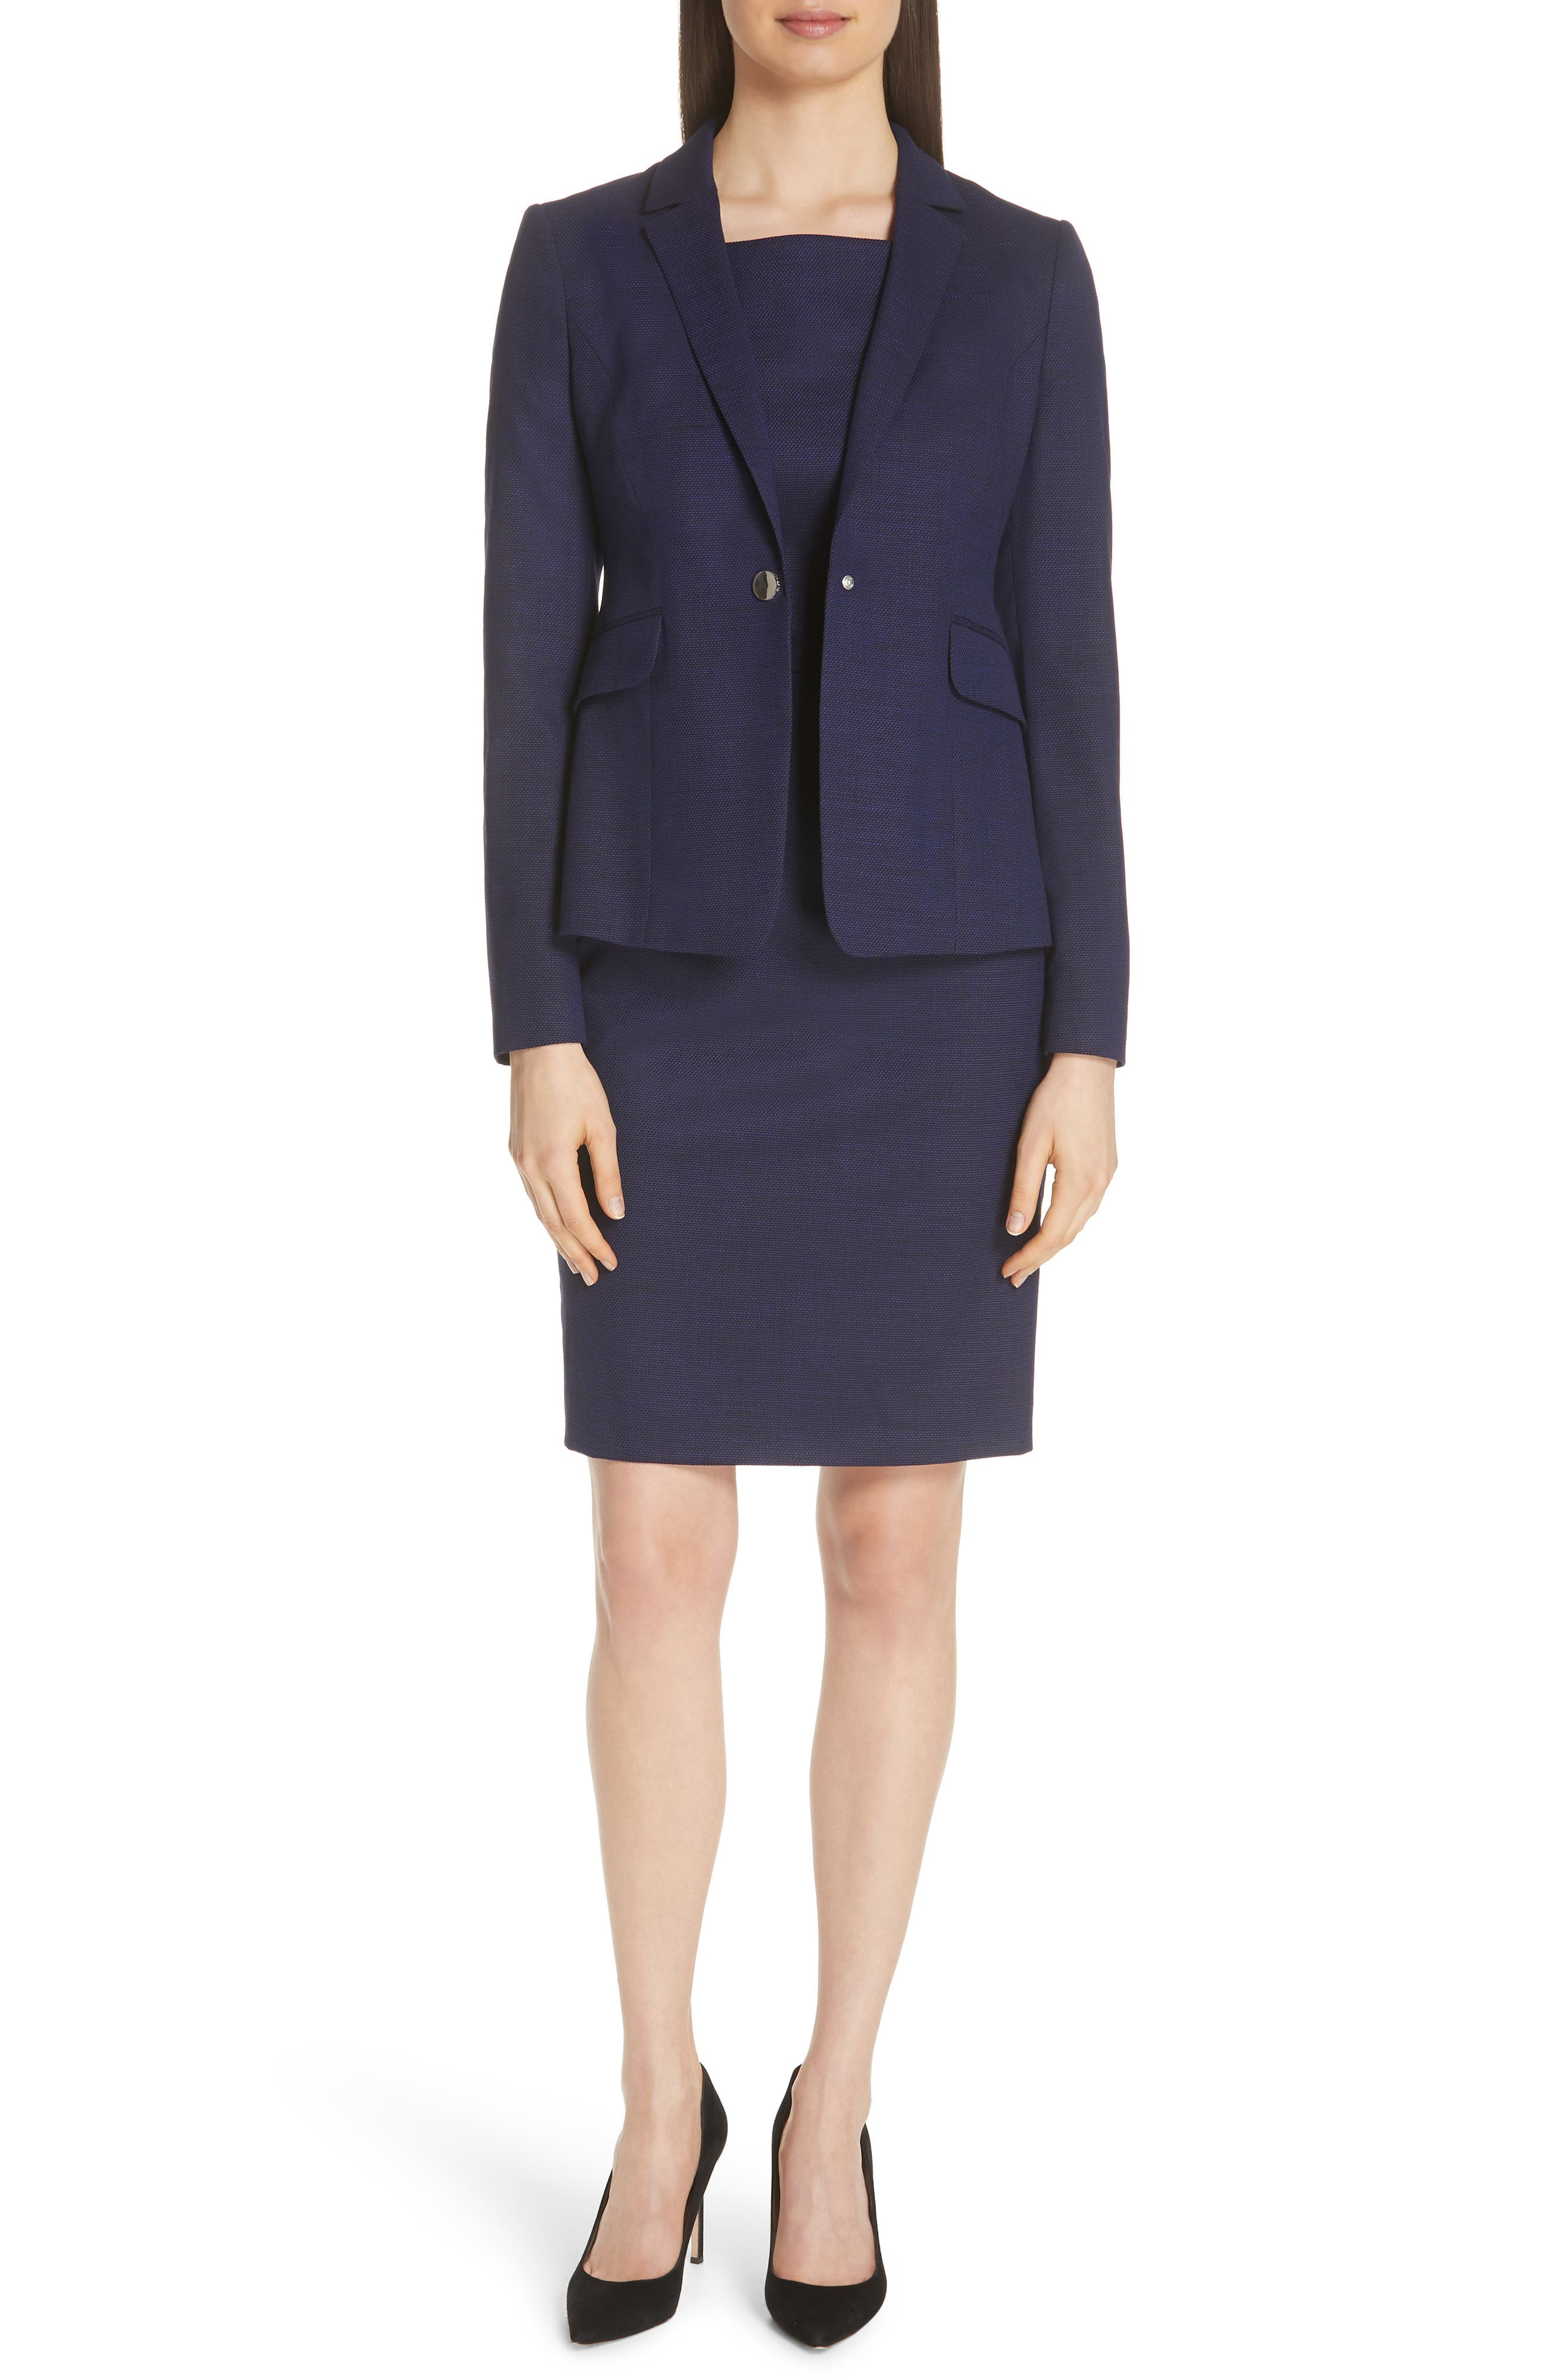 Jibalena Mini Glencheck Suit Jacket,                             Alternate thumbnail 7, color,                             Deep Lilac Fantasy